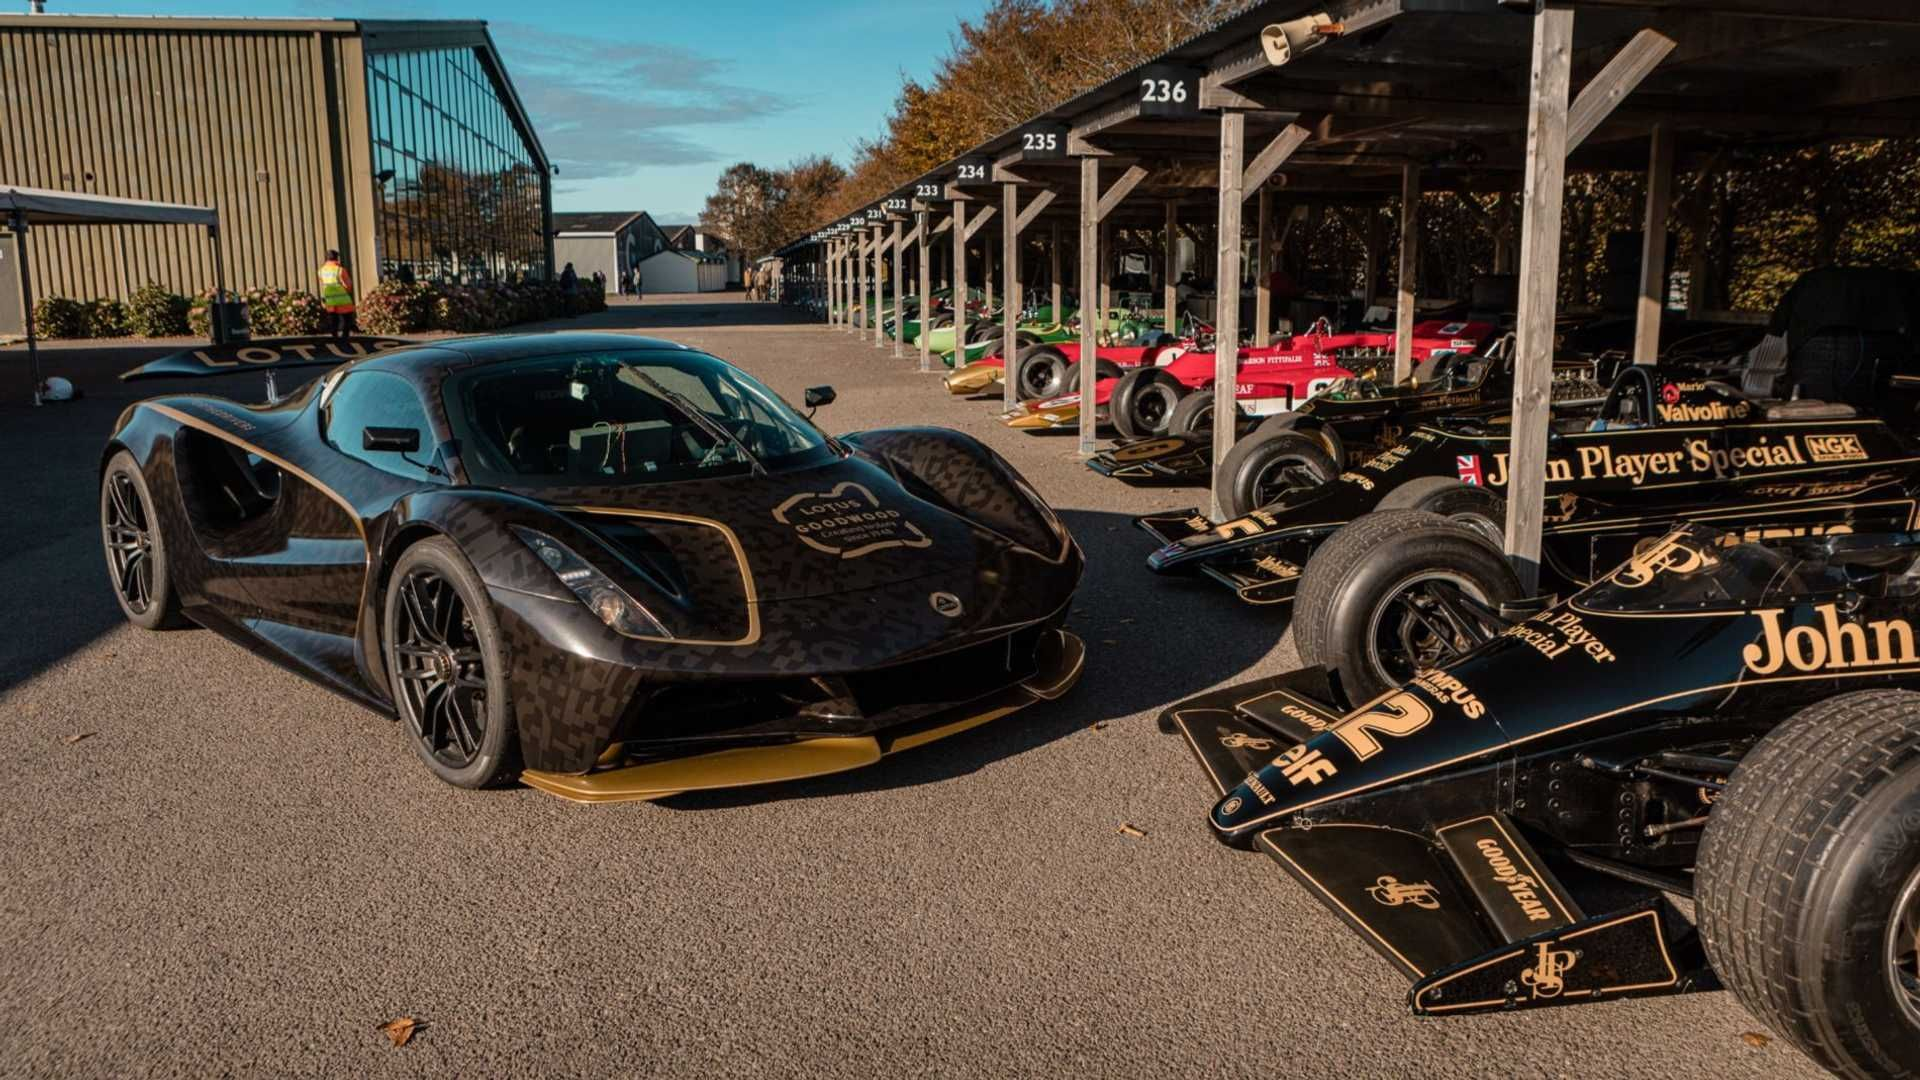 Lotus is using the ongoing Goodwood SpeedWeek event to show off its new Evija electric hypercar. #electriccar #ev